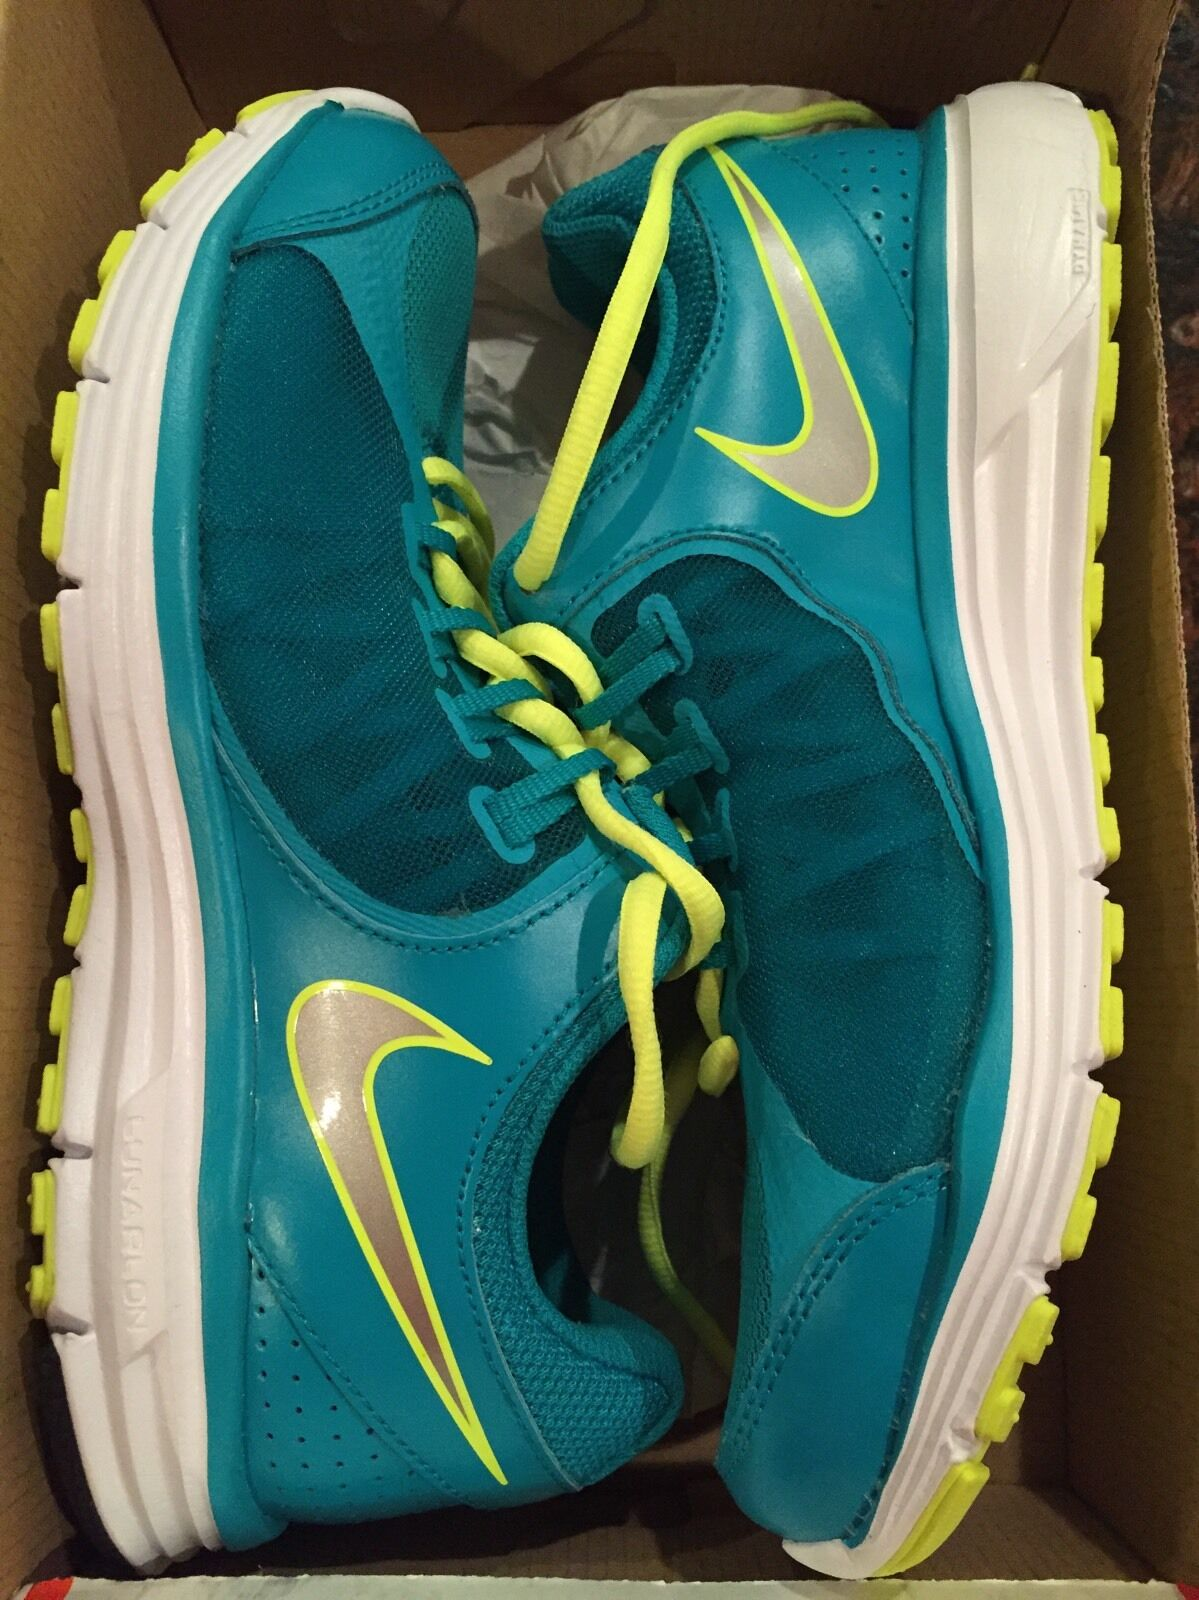 NEW Women's Nike Lunar Forever 3 Size 6.5 Running Shoes Sneakers 631426-300 Teal